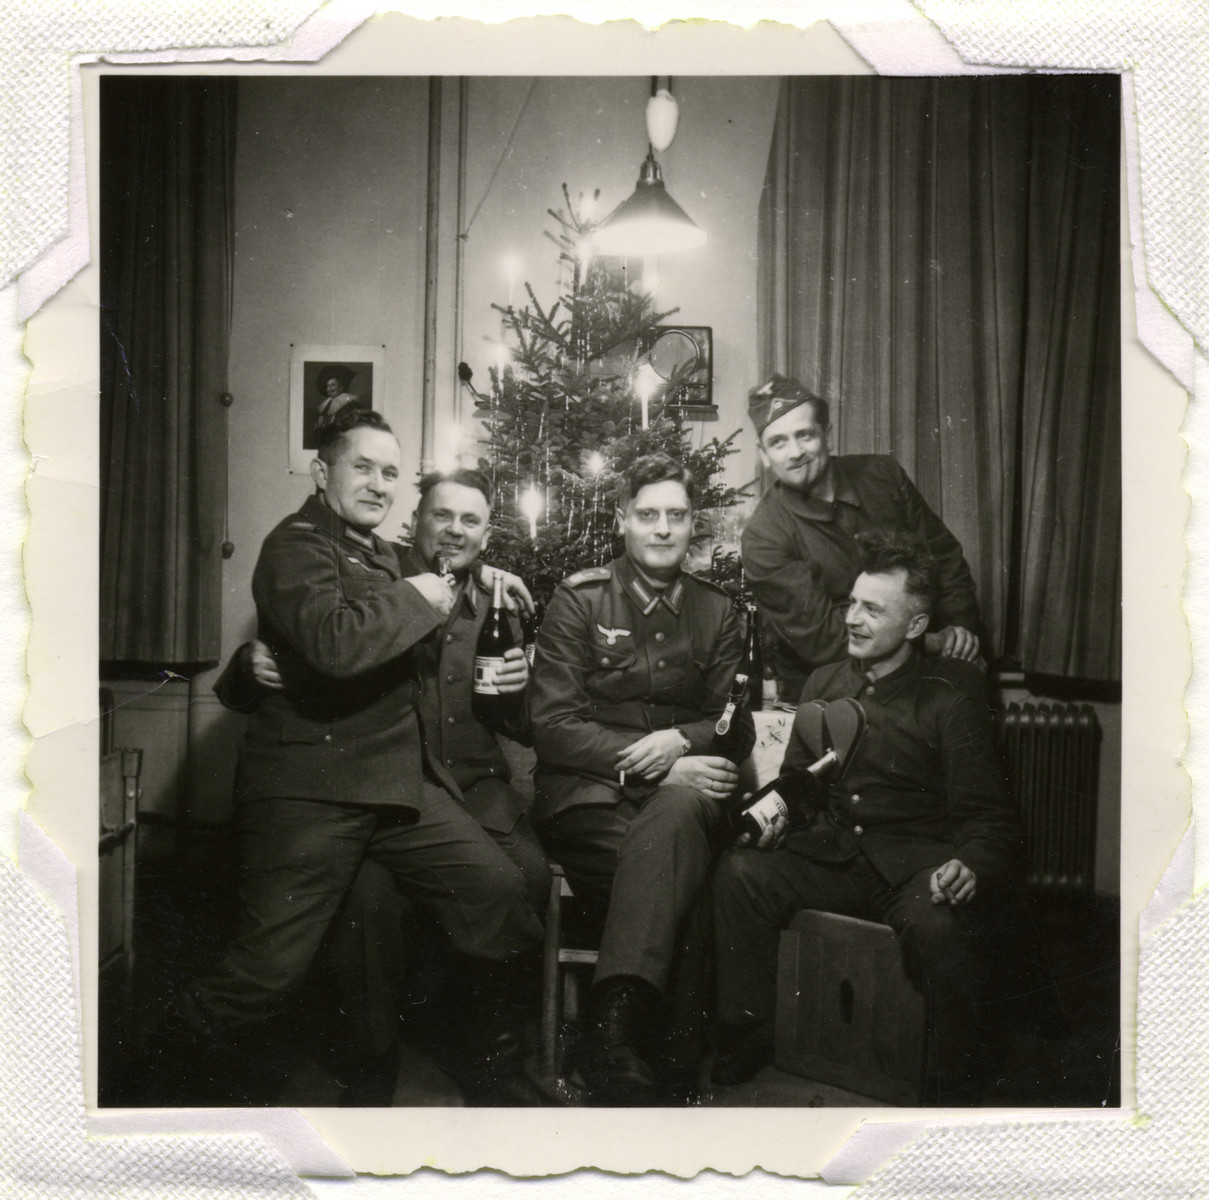 German soldiers pose in front of a Christmas tree.